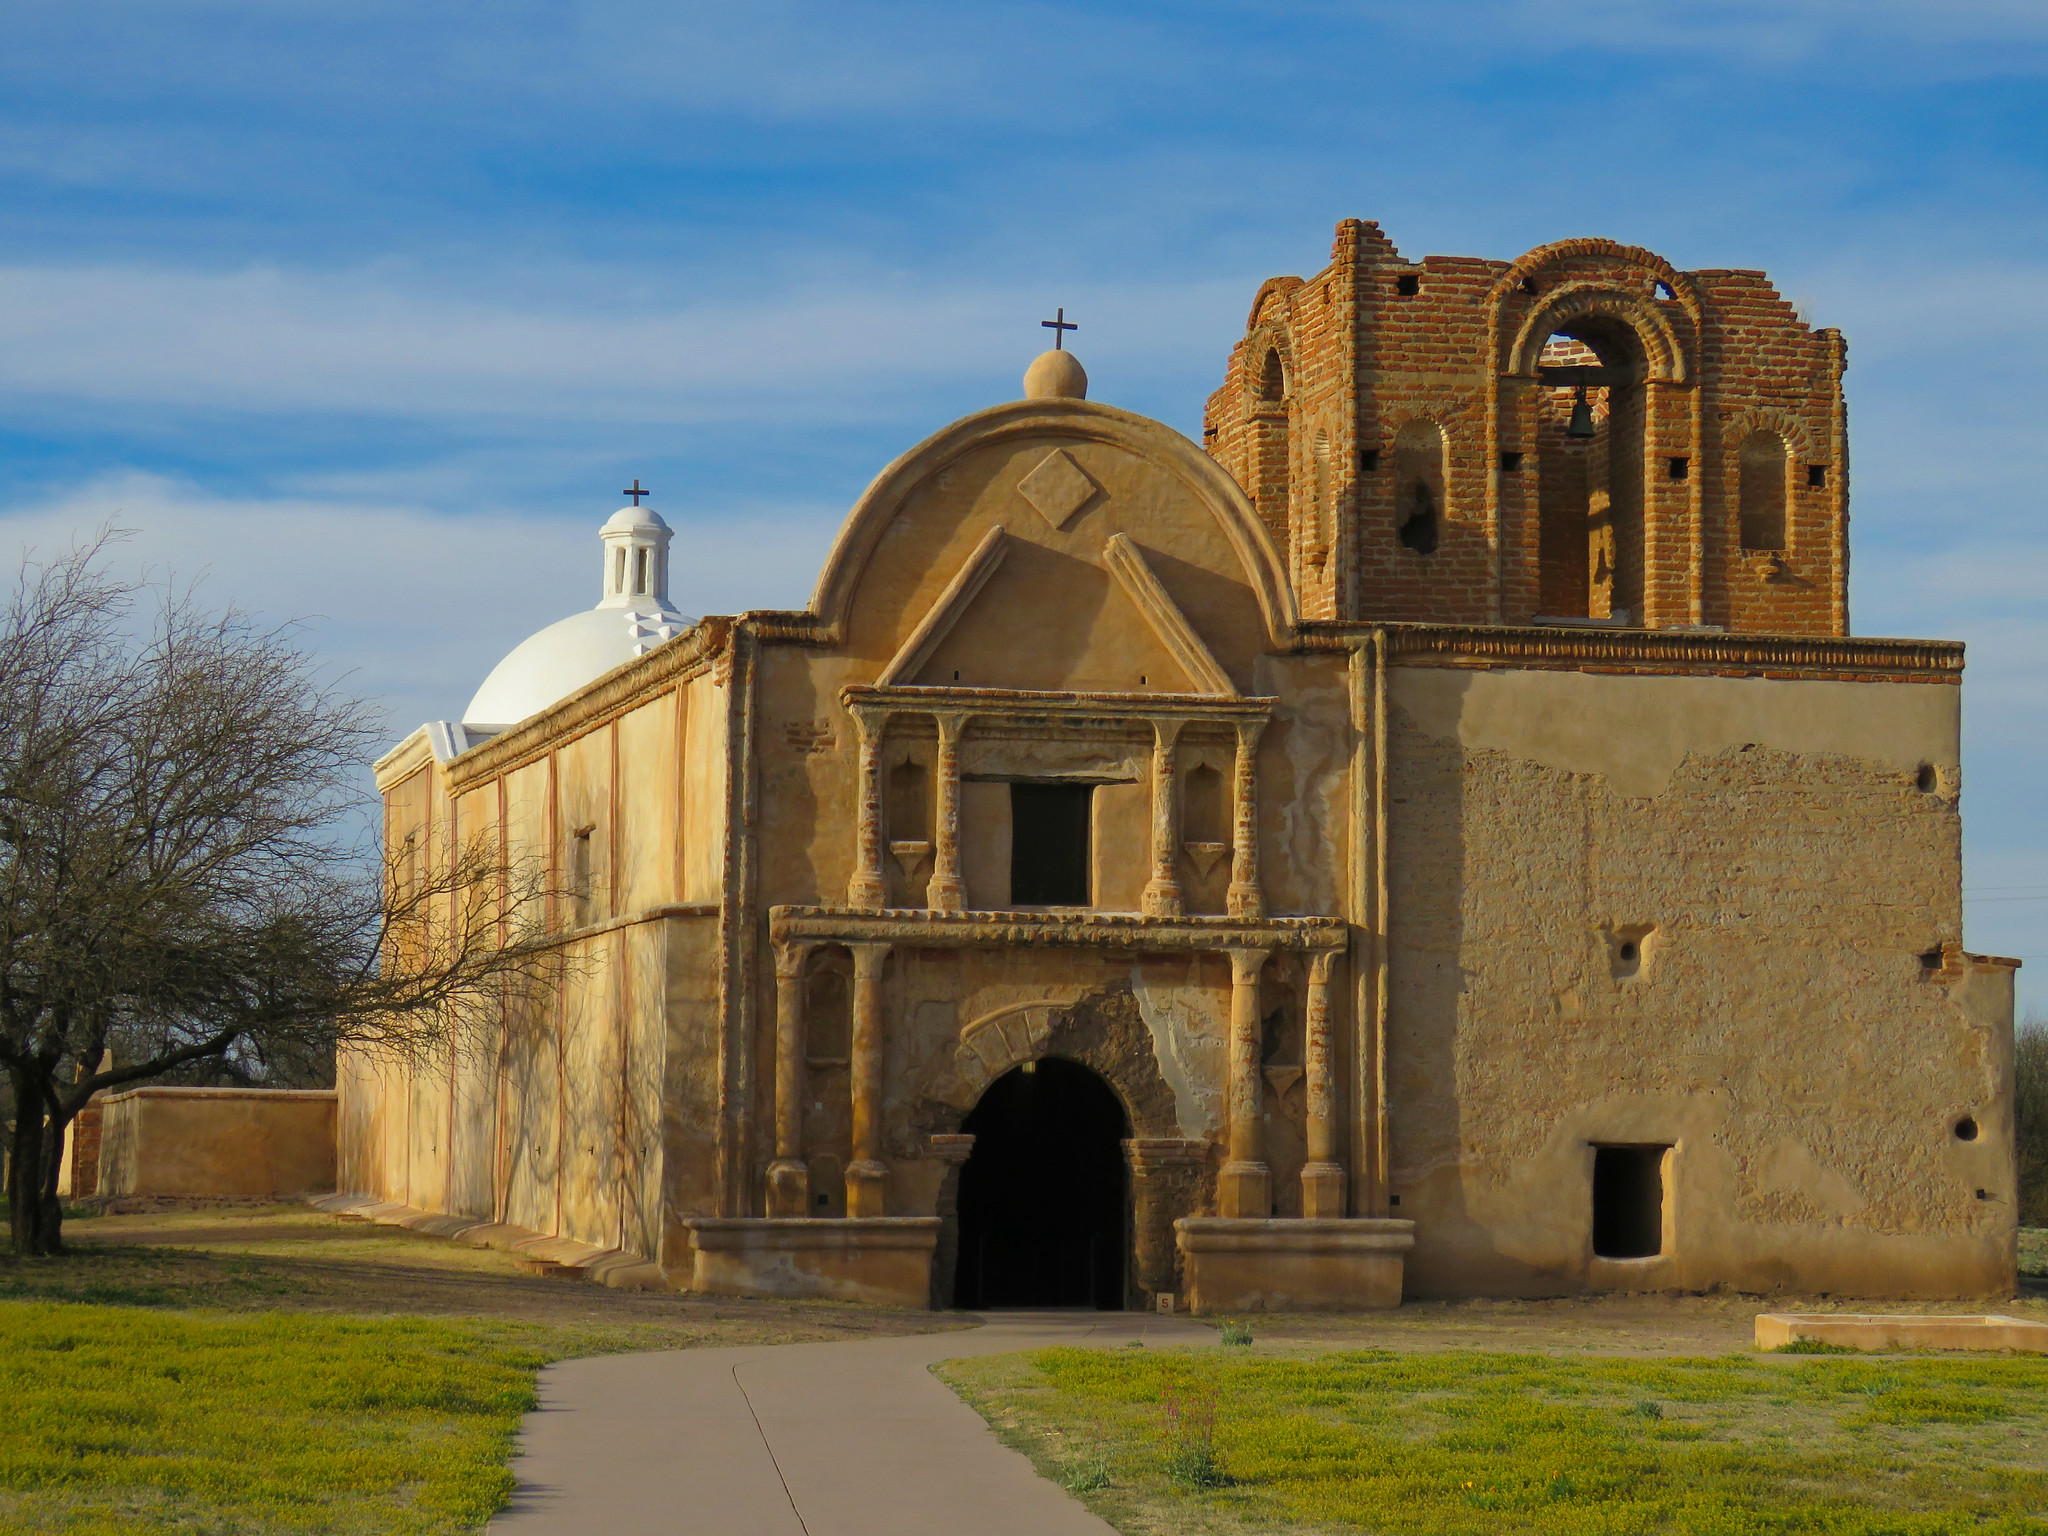 The Tumacácori National Historical Park is one of the national parks in Arizona still open during the coronavirus.